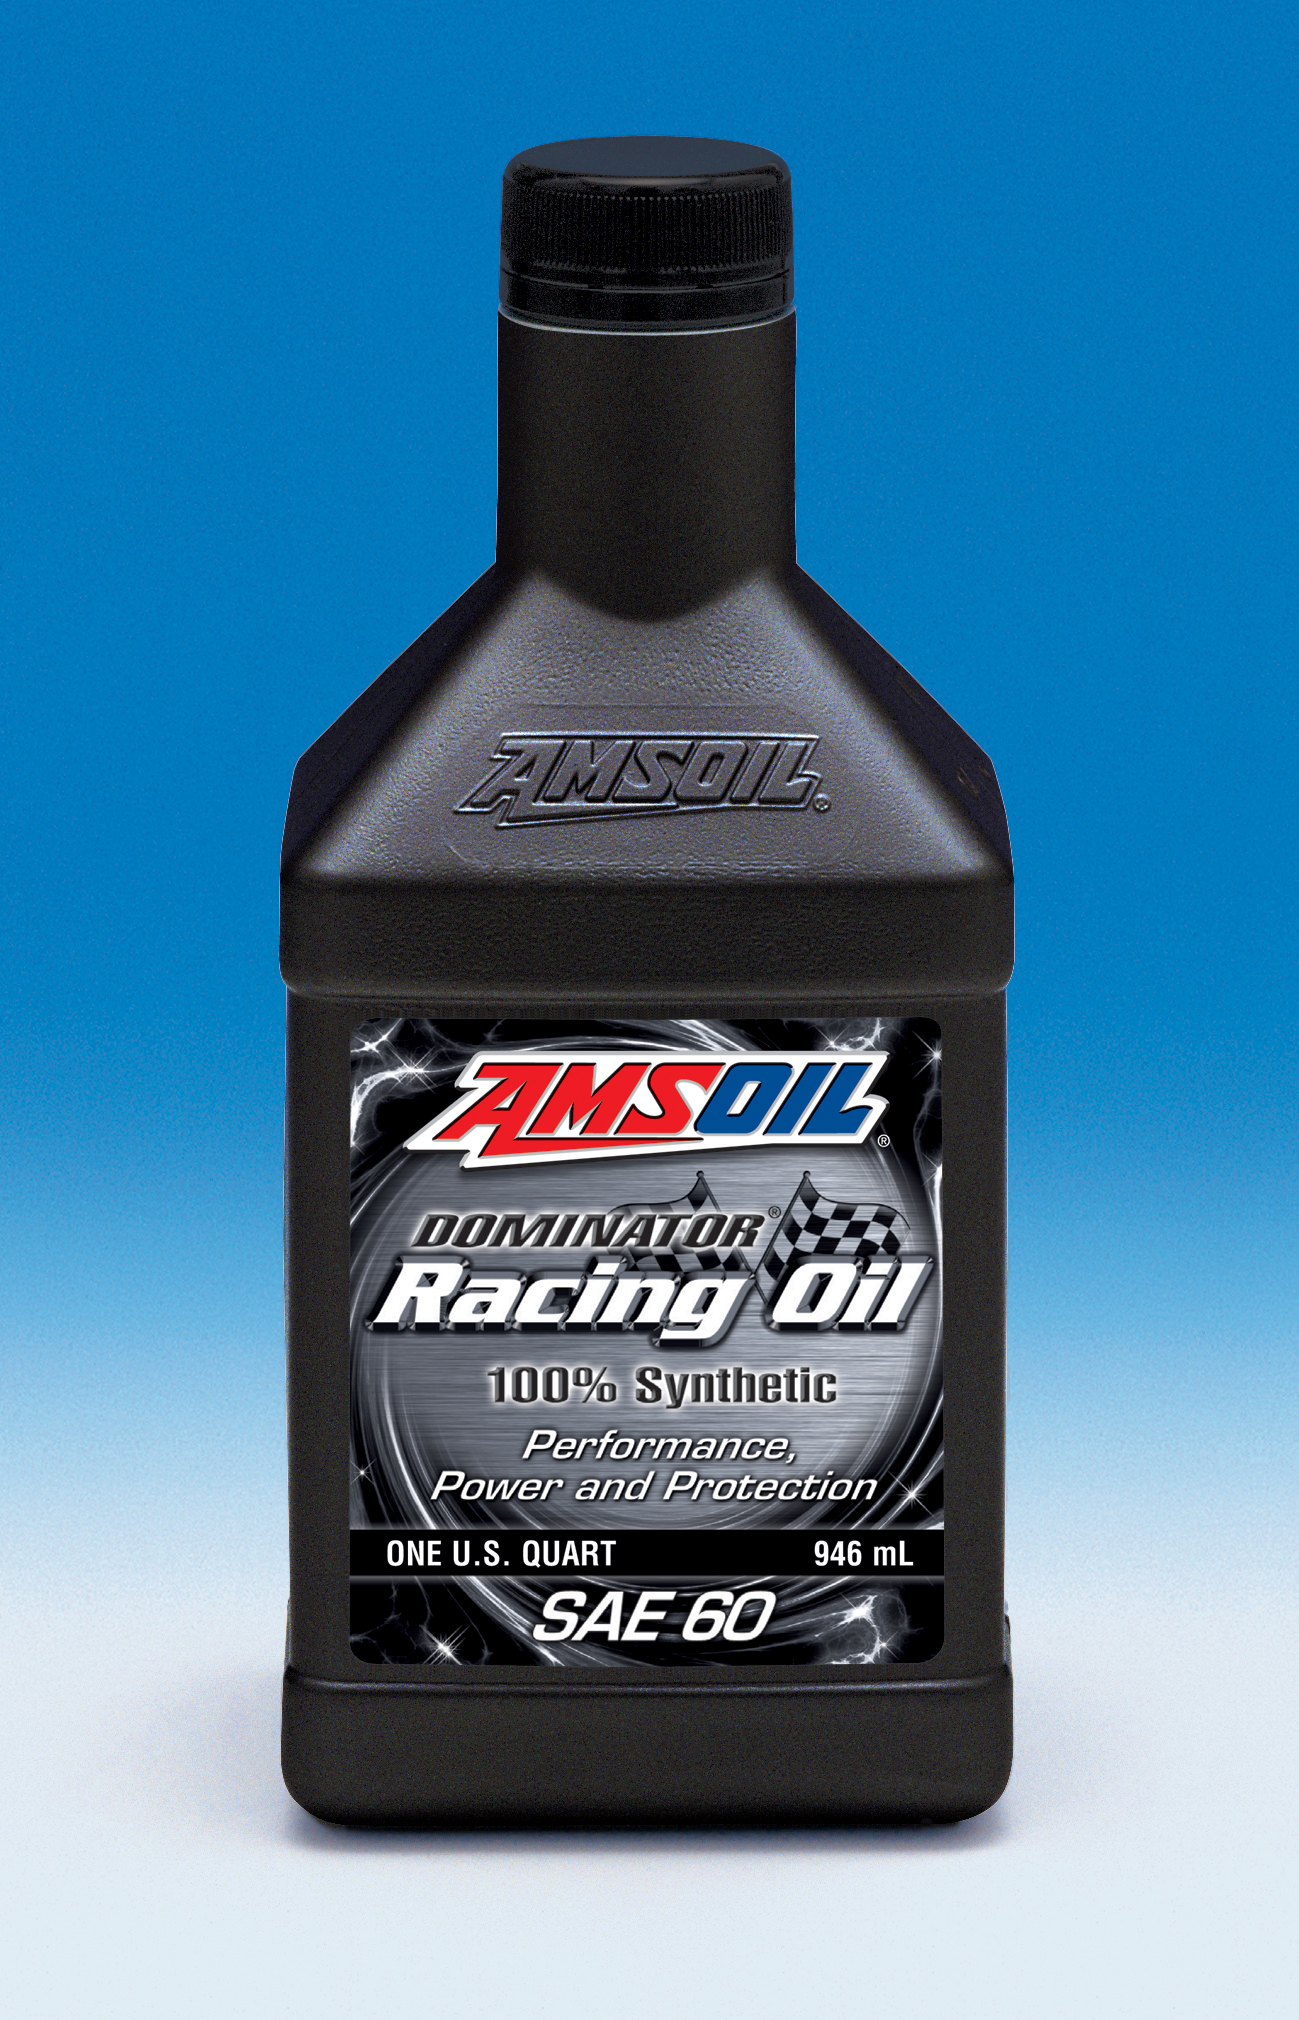 AMSOIL adds Dominator SAE 60 to its premium racing oil series